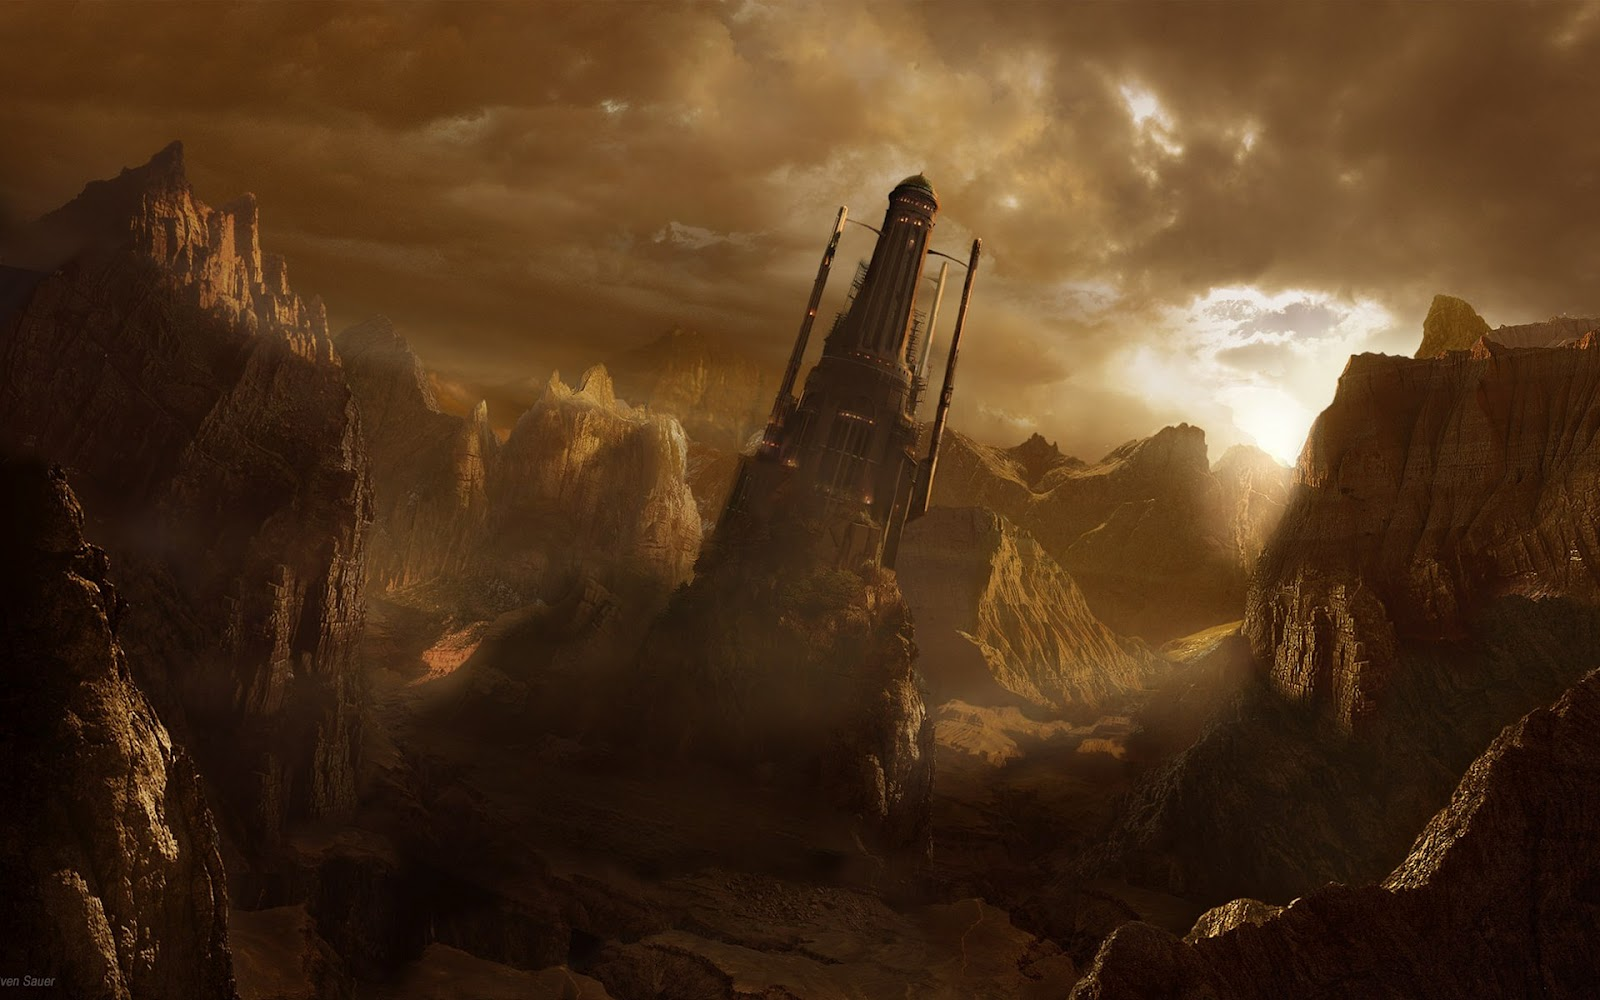 Dual Screen Hd Fantasy Wallpapers Get Your Fix Here: Infinity4Every1: Amazing Fantasy Art